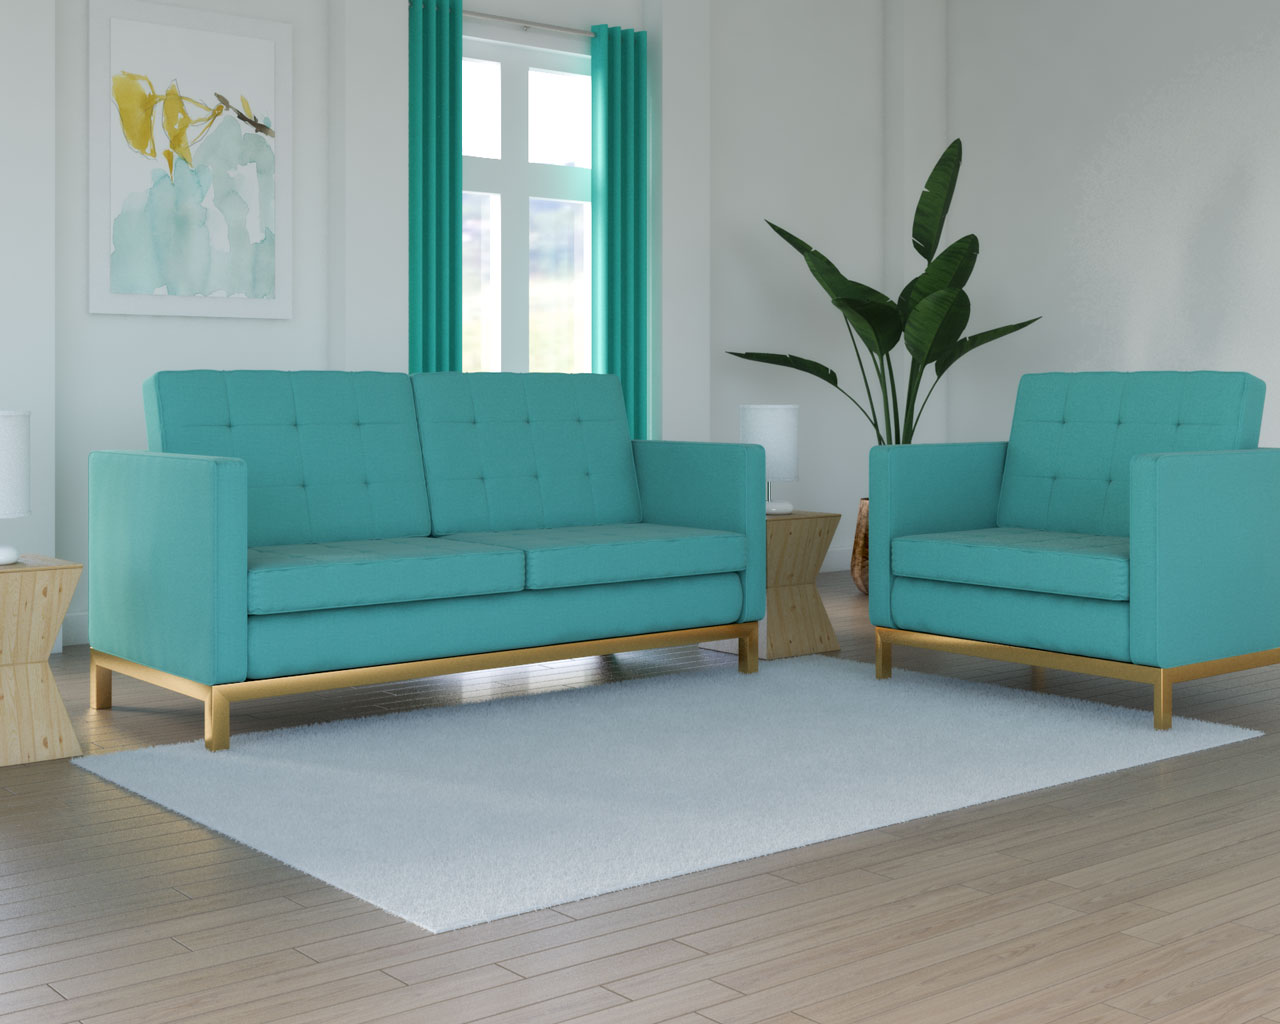 White rug with teal sofa